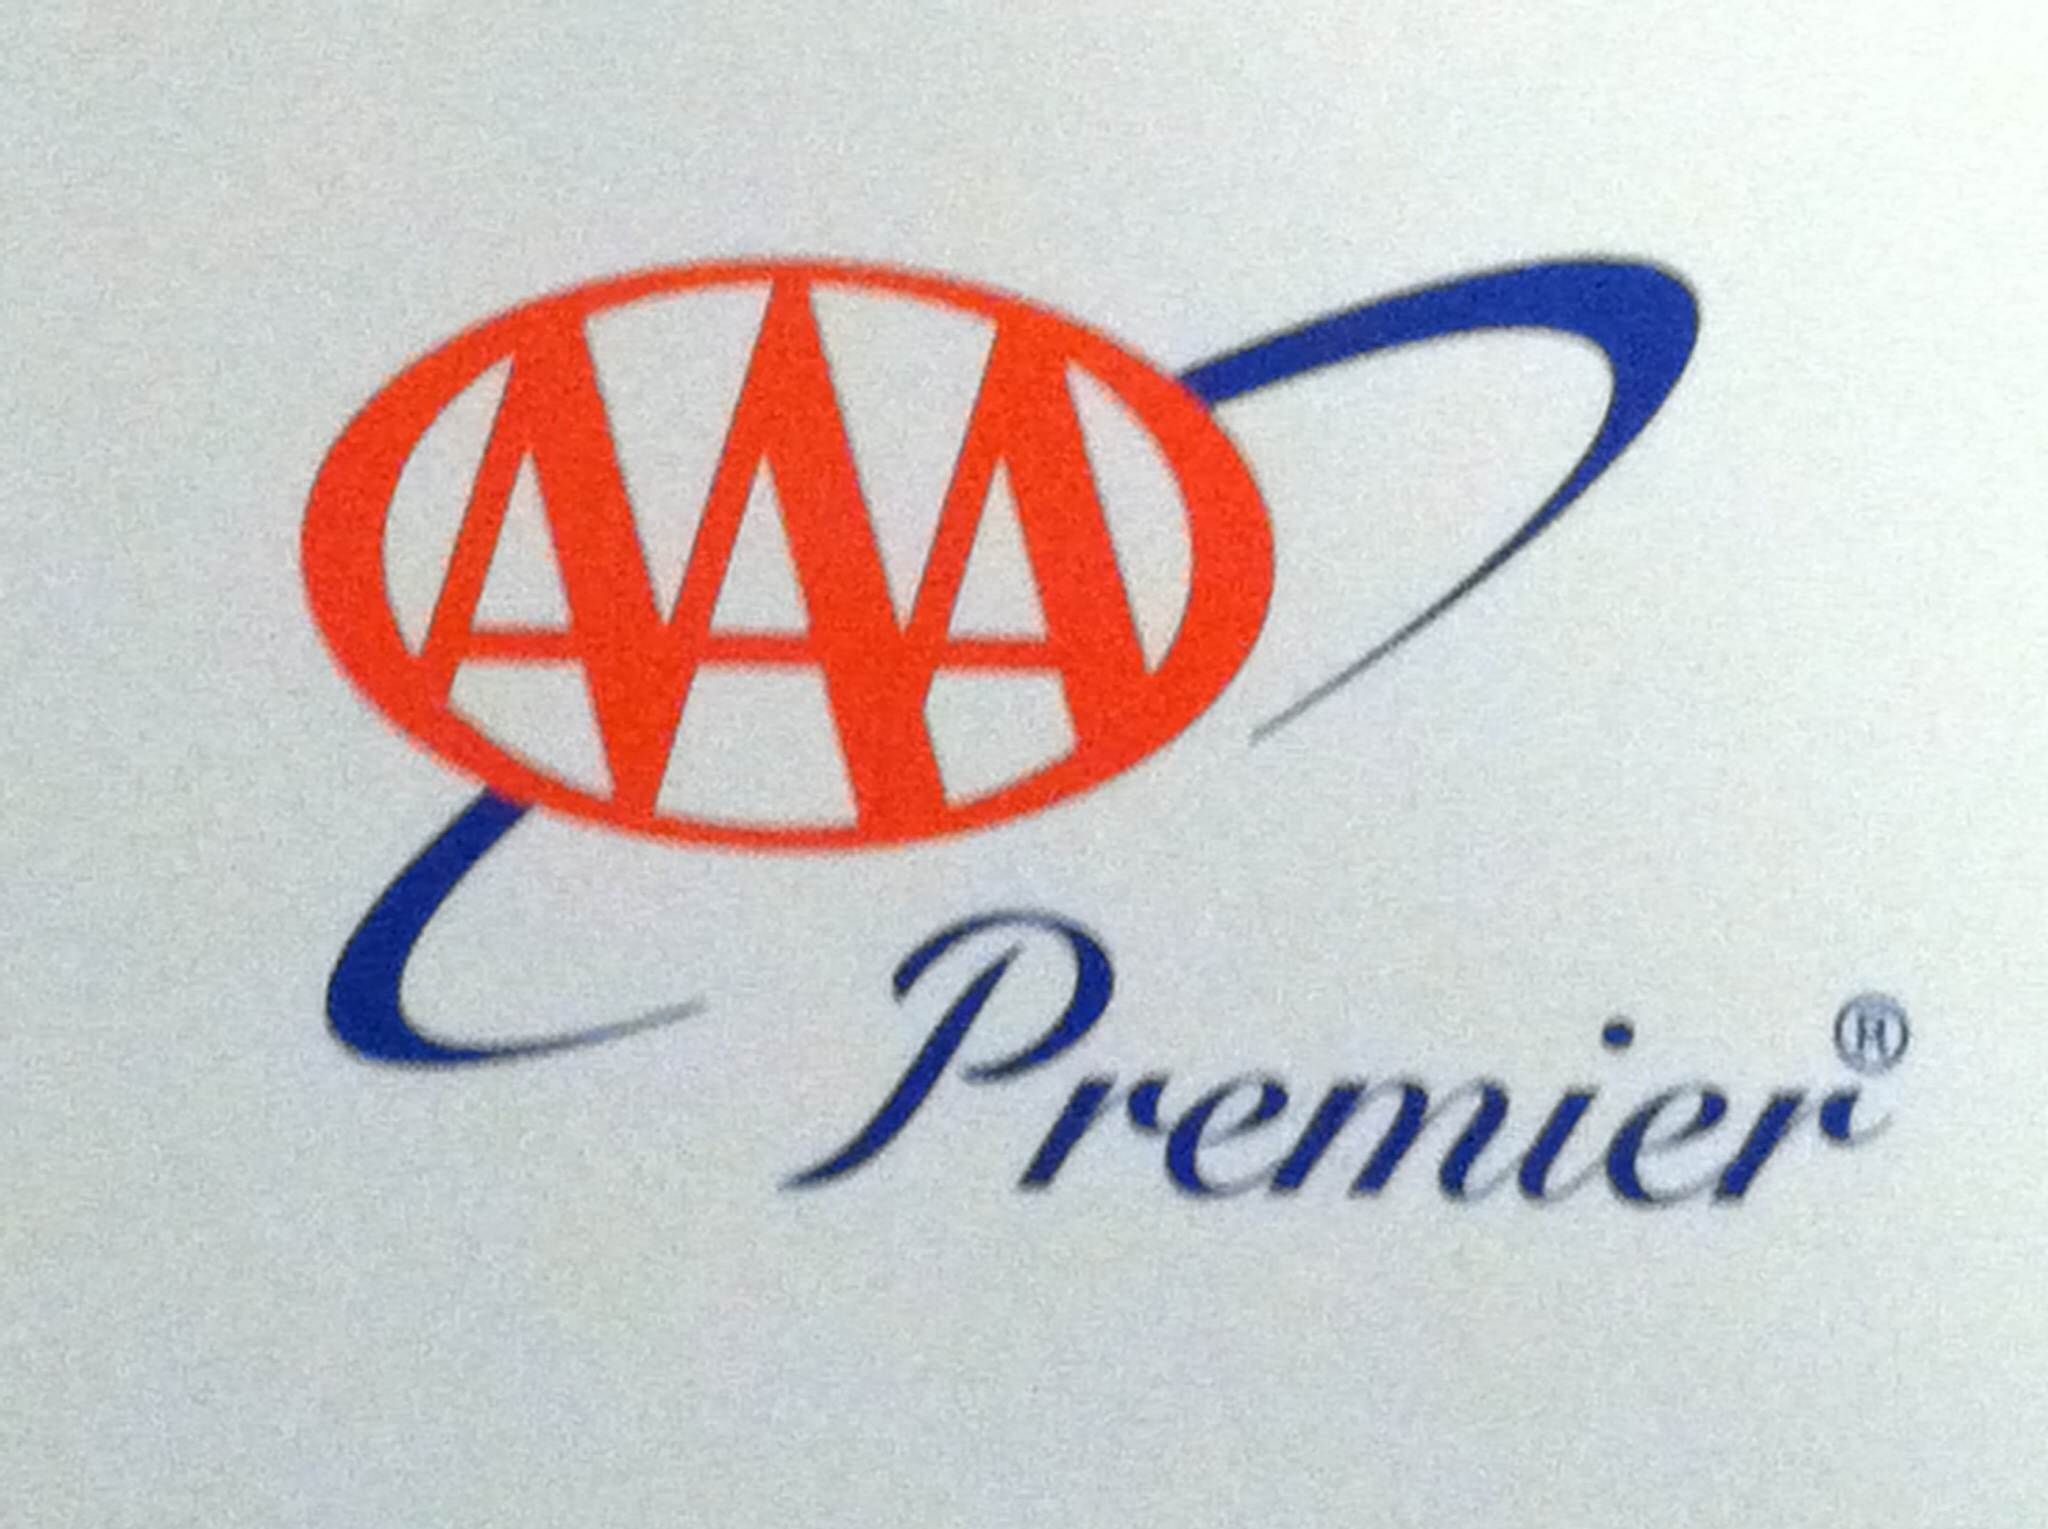 aaa insurance 1500 commercial way bakersfield ca 93309